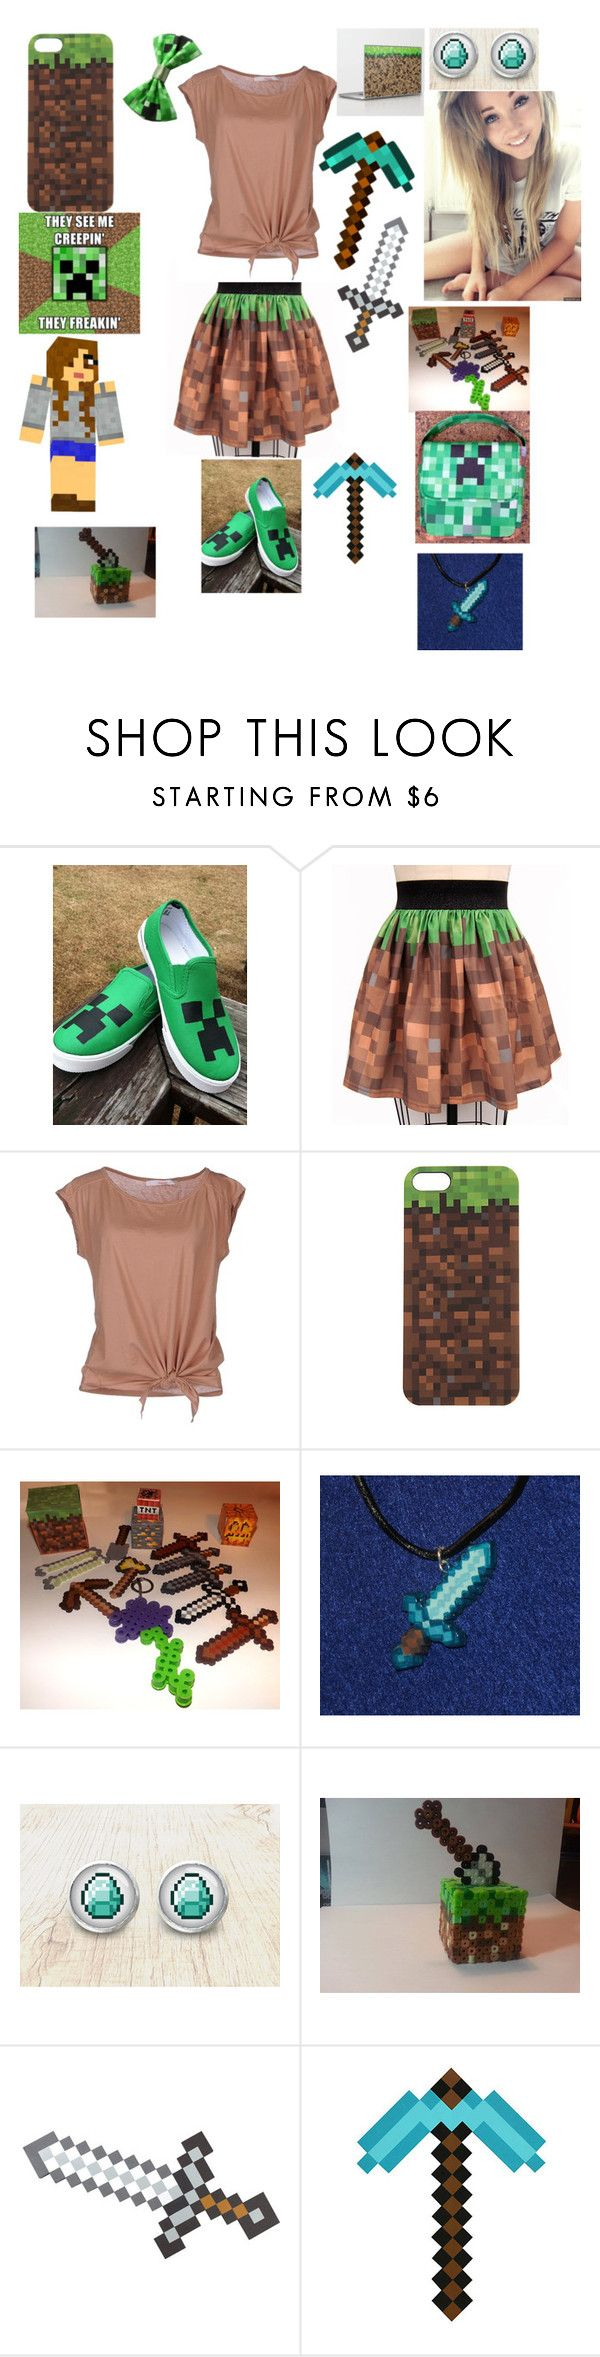 """My MineCraft outfit! ~ Sierra"" by sierrahoran12 ❤ liked on Polyvore featuring jucca"